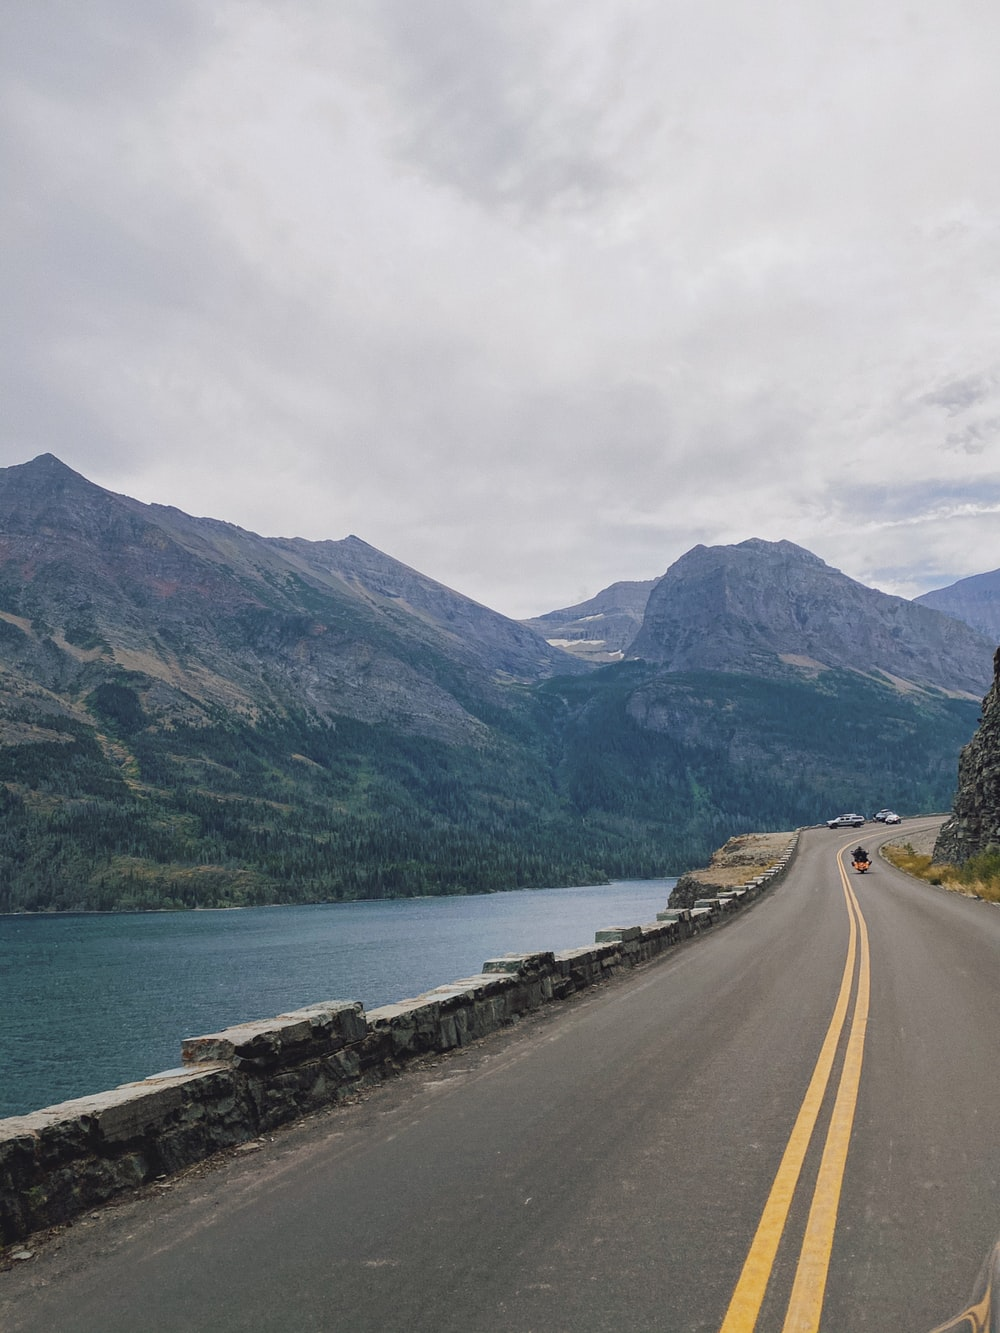 gray concrete road near body of water and mountains during daytime